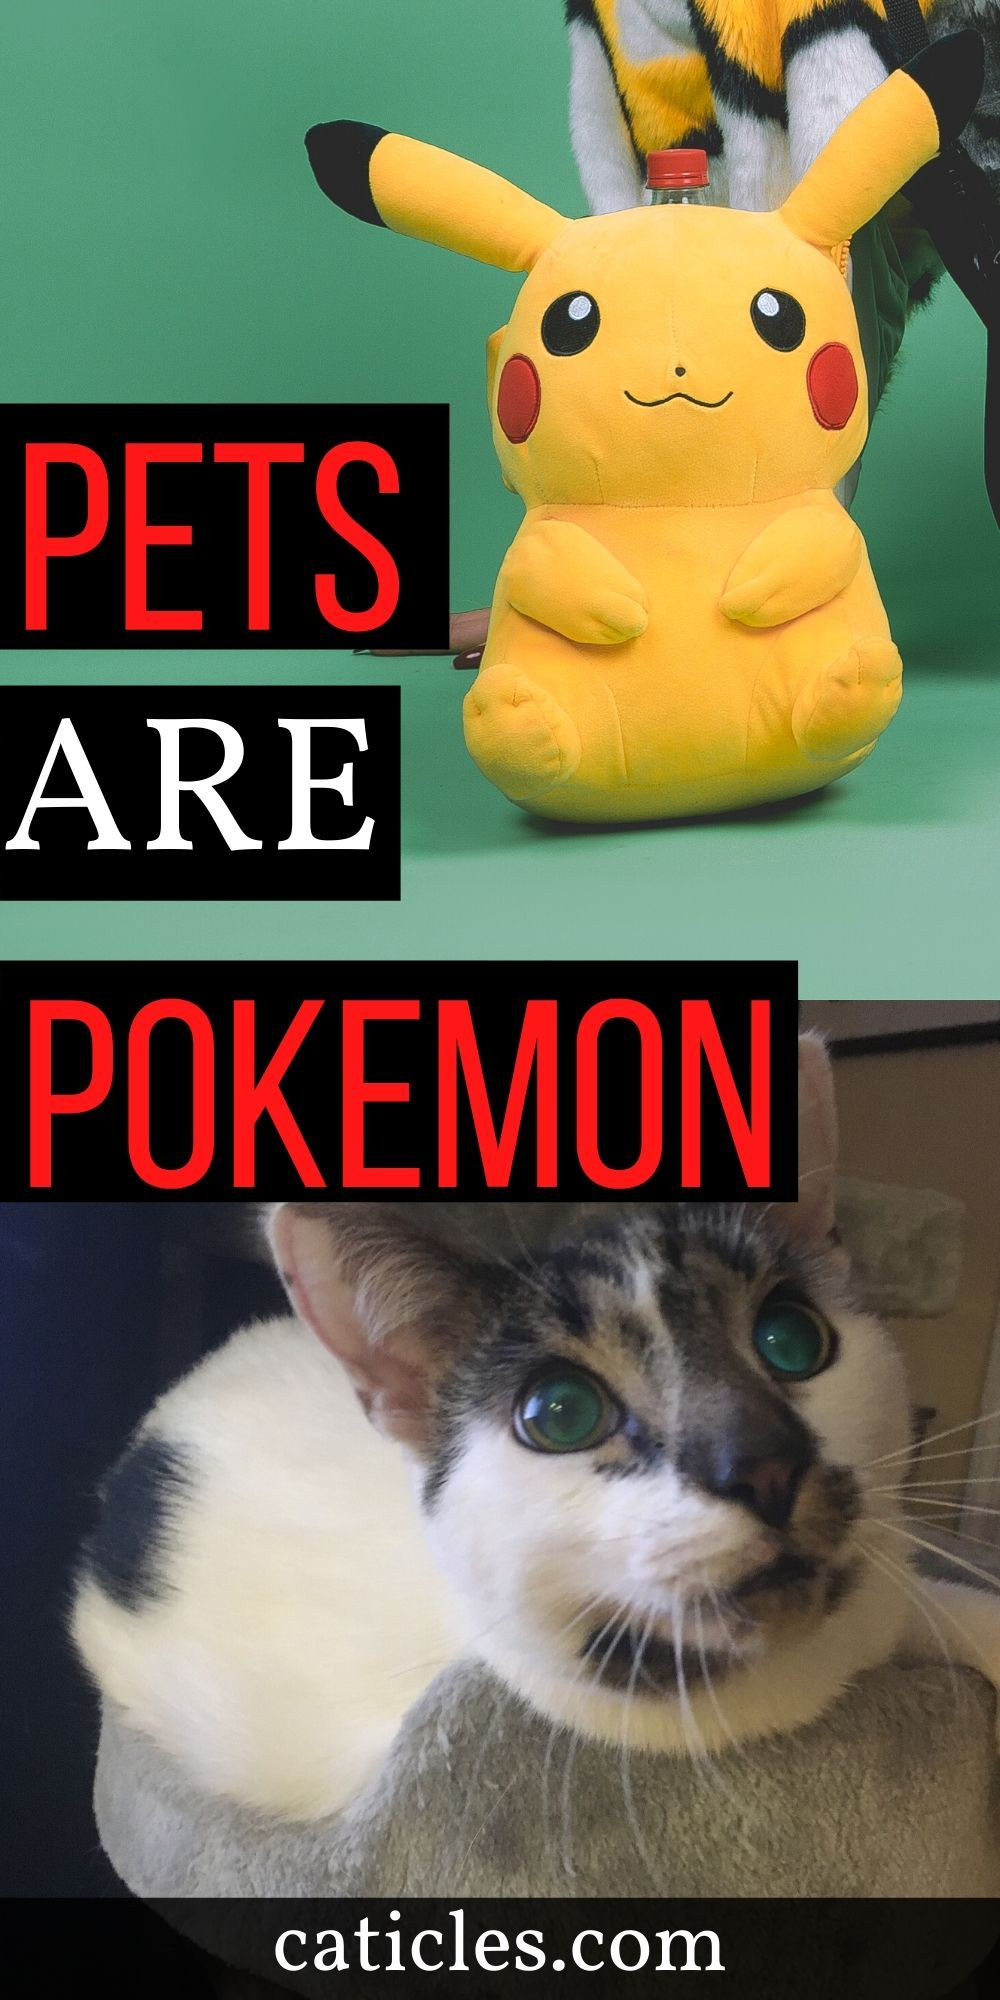 19 Funny But True Ways Your Pets Are Like Pokemon Caticles In 2020 Kitten Care Cat Problems Cat Mom